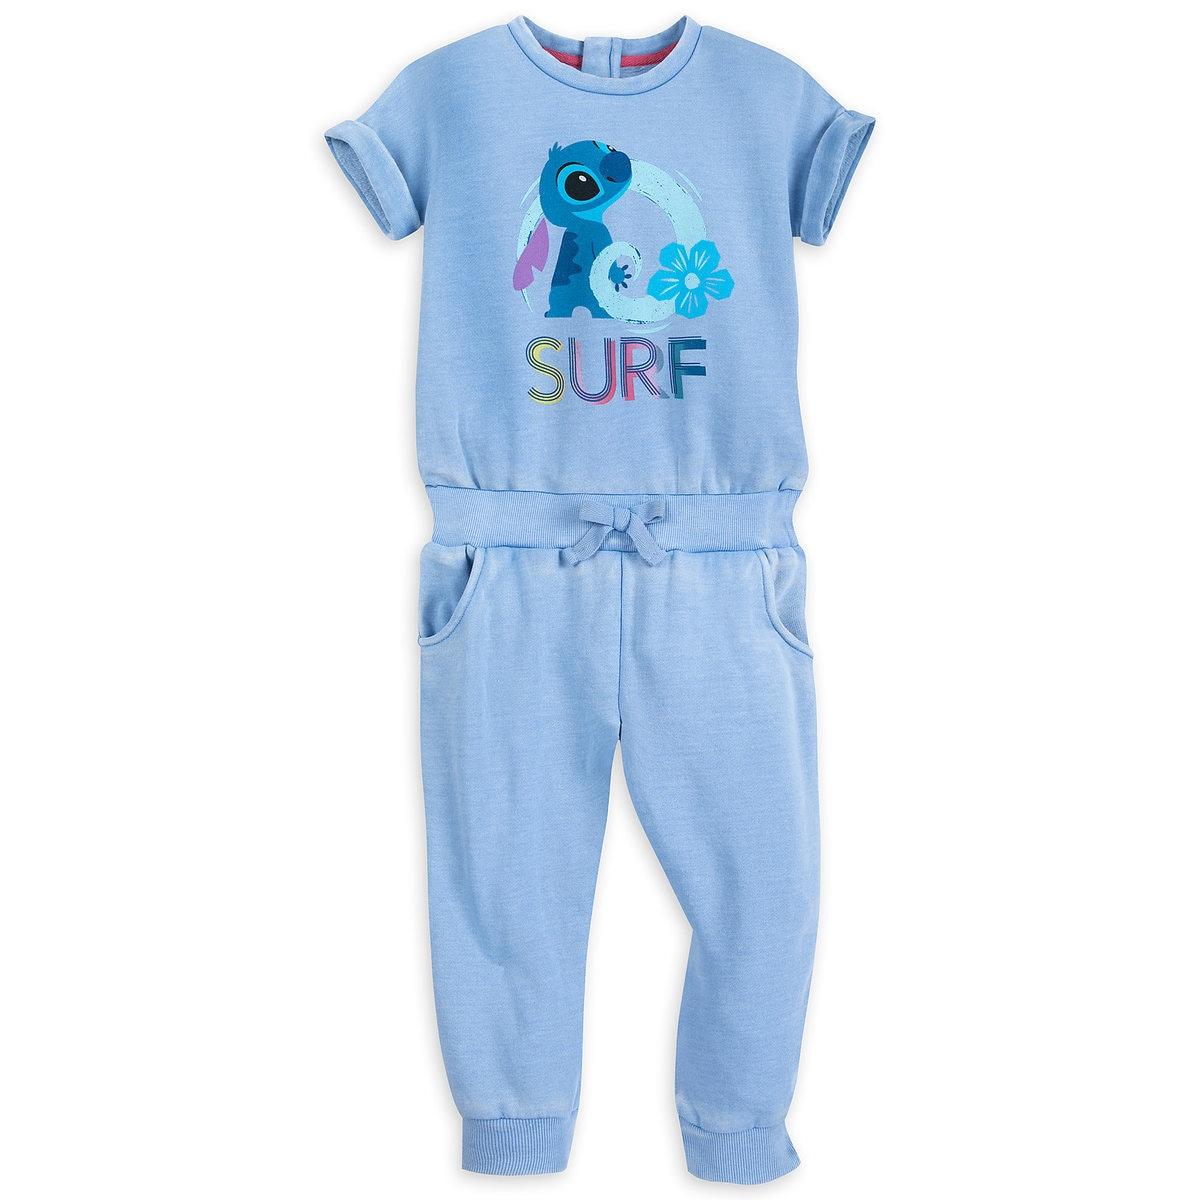 632a9e28c Product Image of Stitch Jumpsuit for Girls # 1